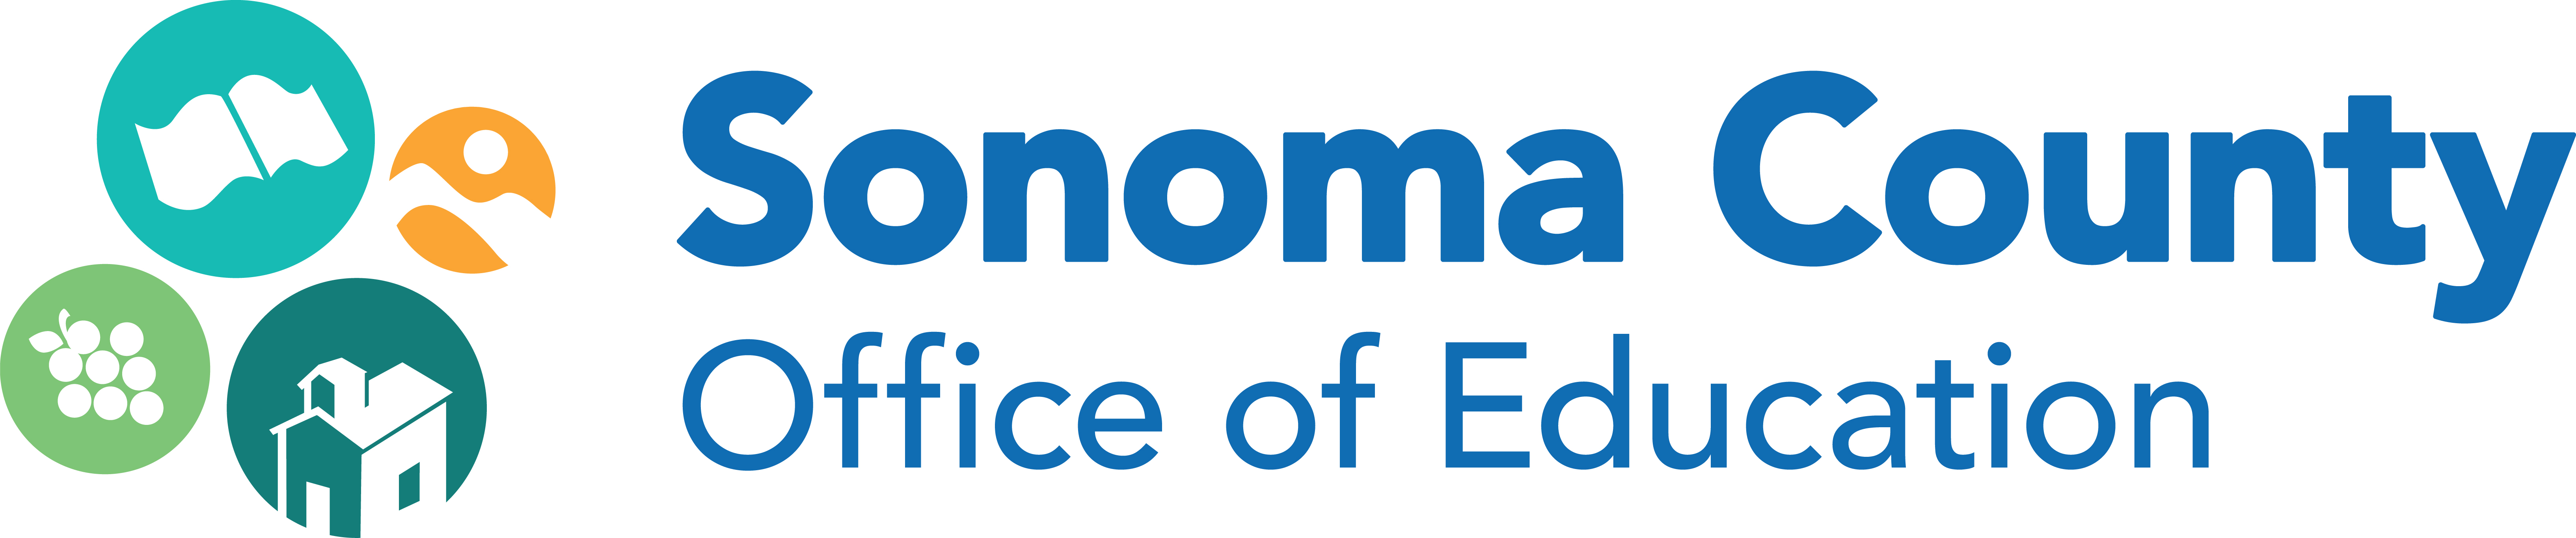 Sonoma County - Office of Education